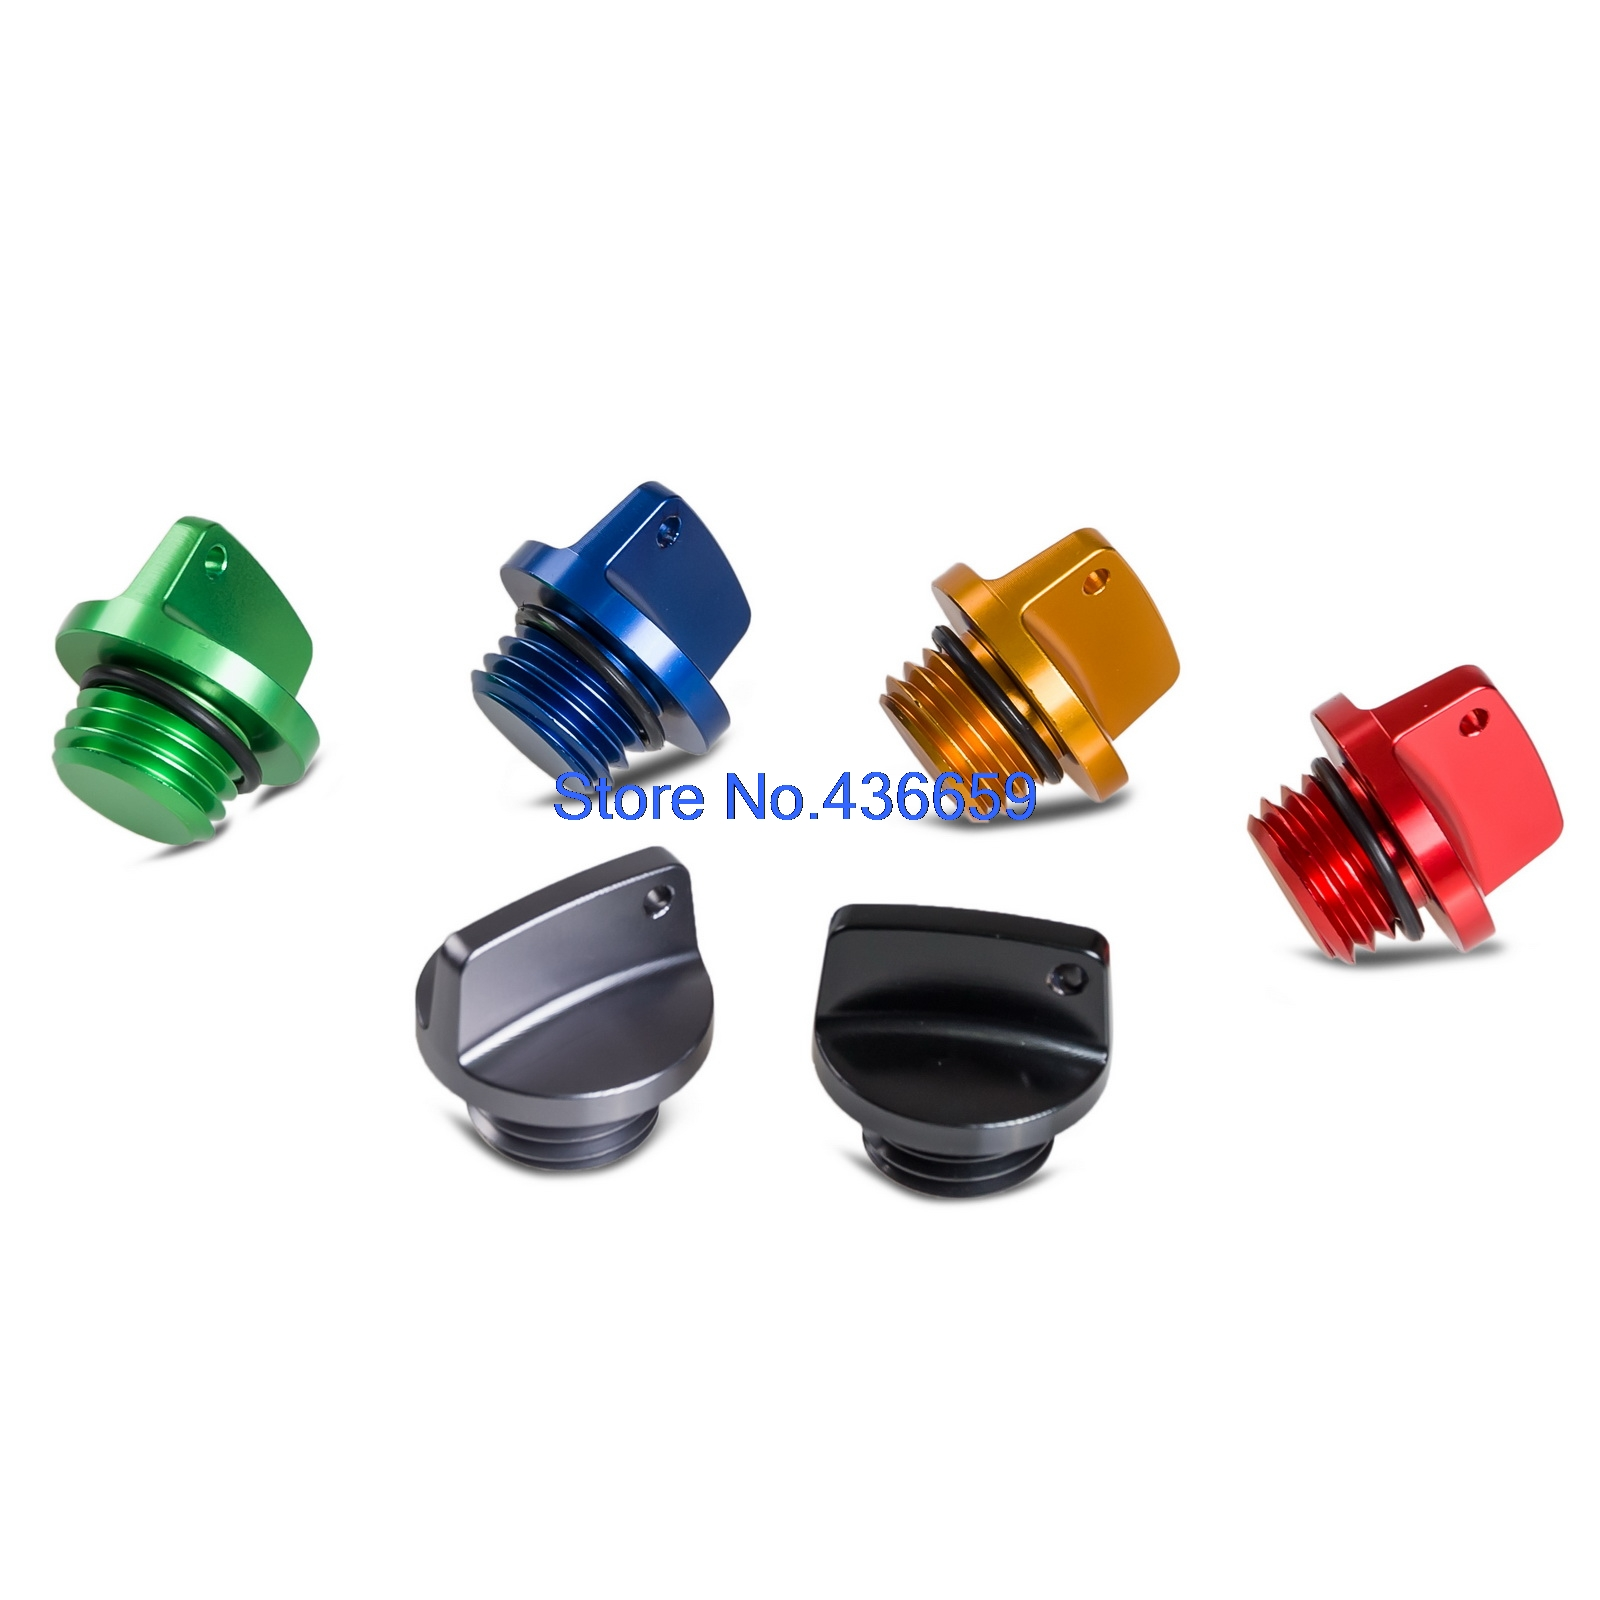 CNC Oil Filler Cap Plug For Ducati 848 899 1199 Monster 696 796 821 1100 1200 Multistrada MTS1200 Streetfighter 848 Diavel